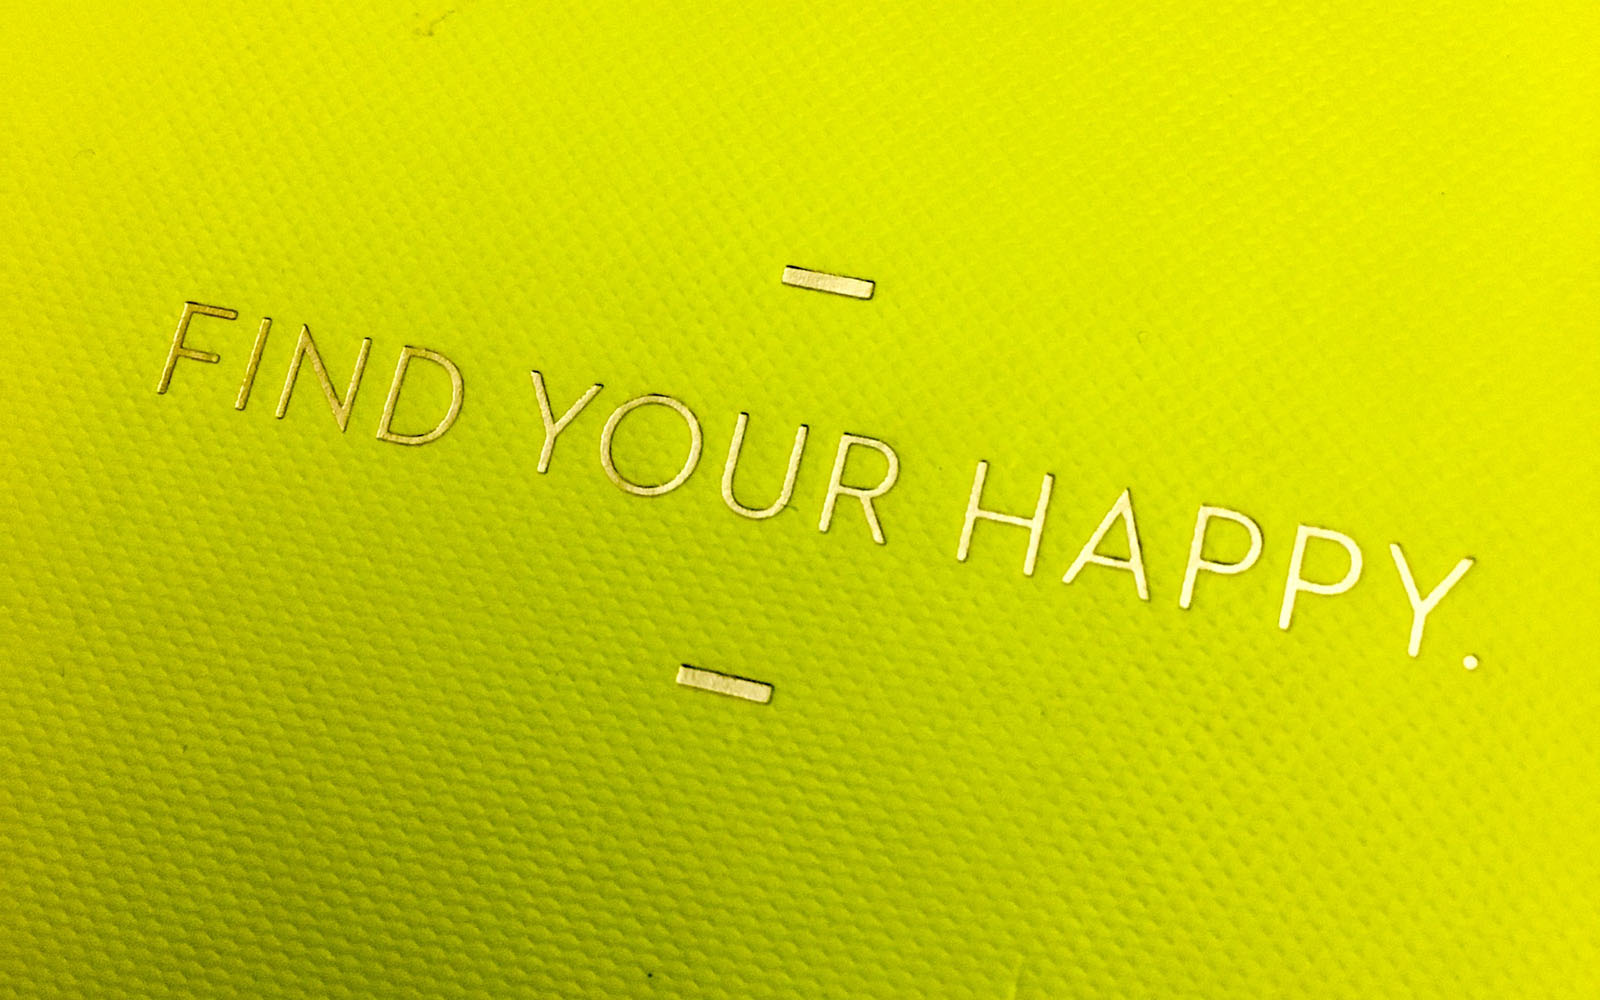 Find Your Happy